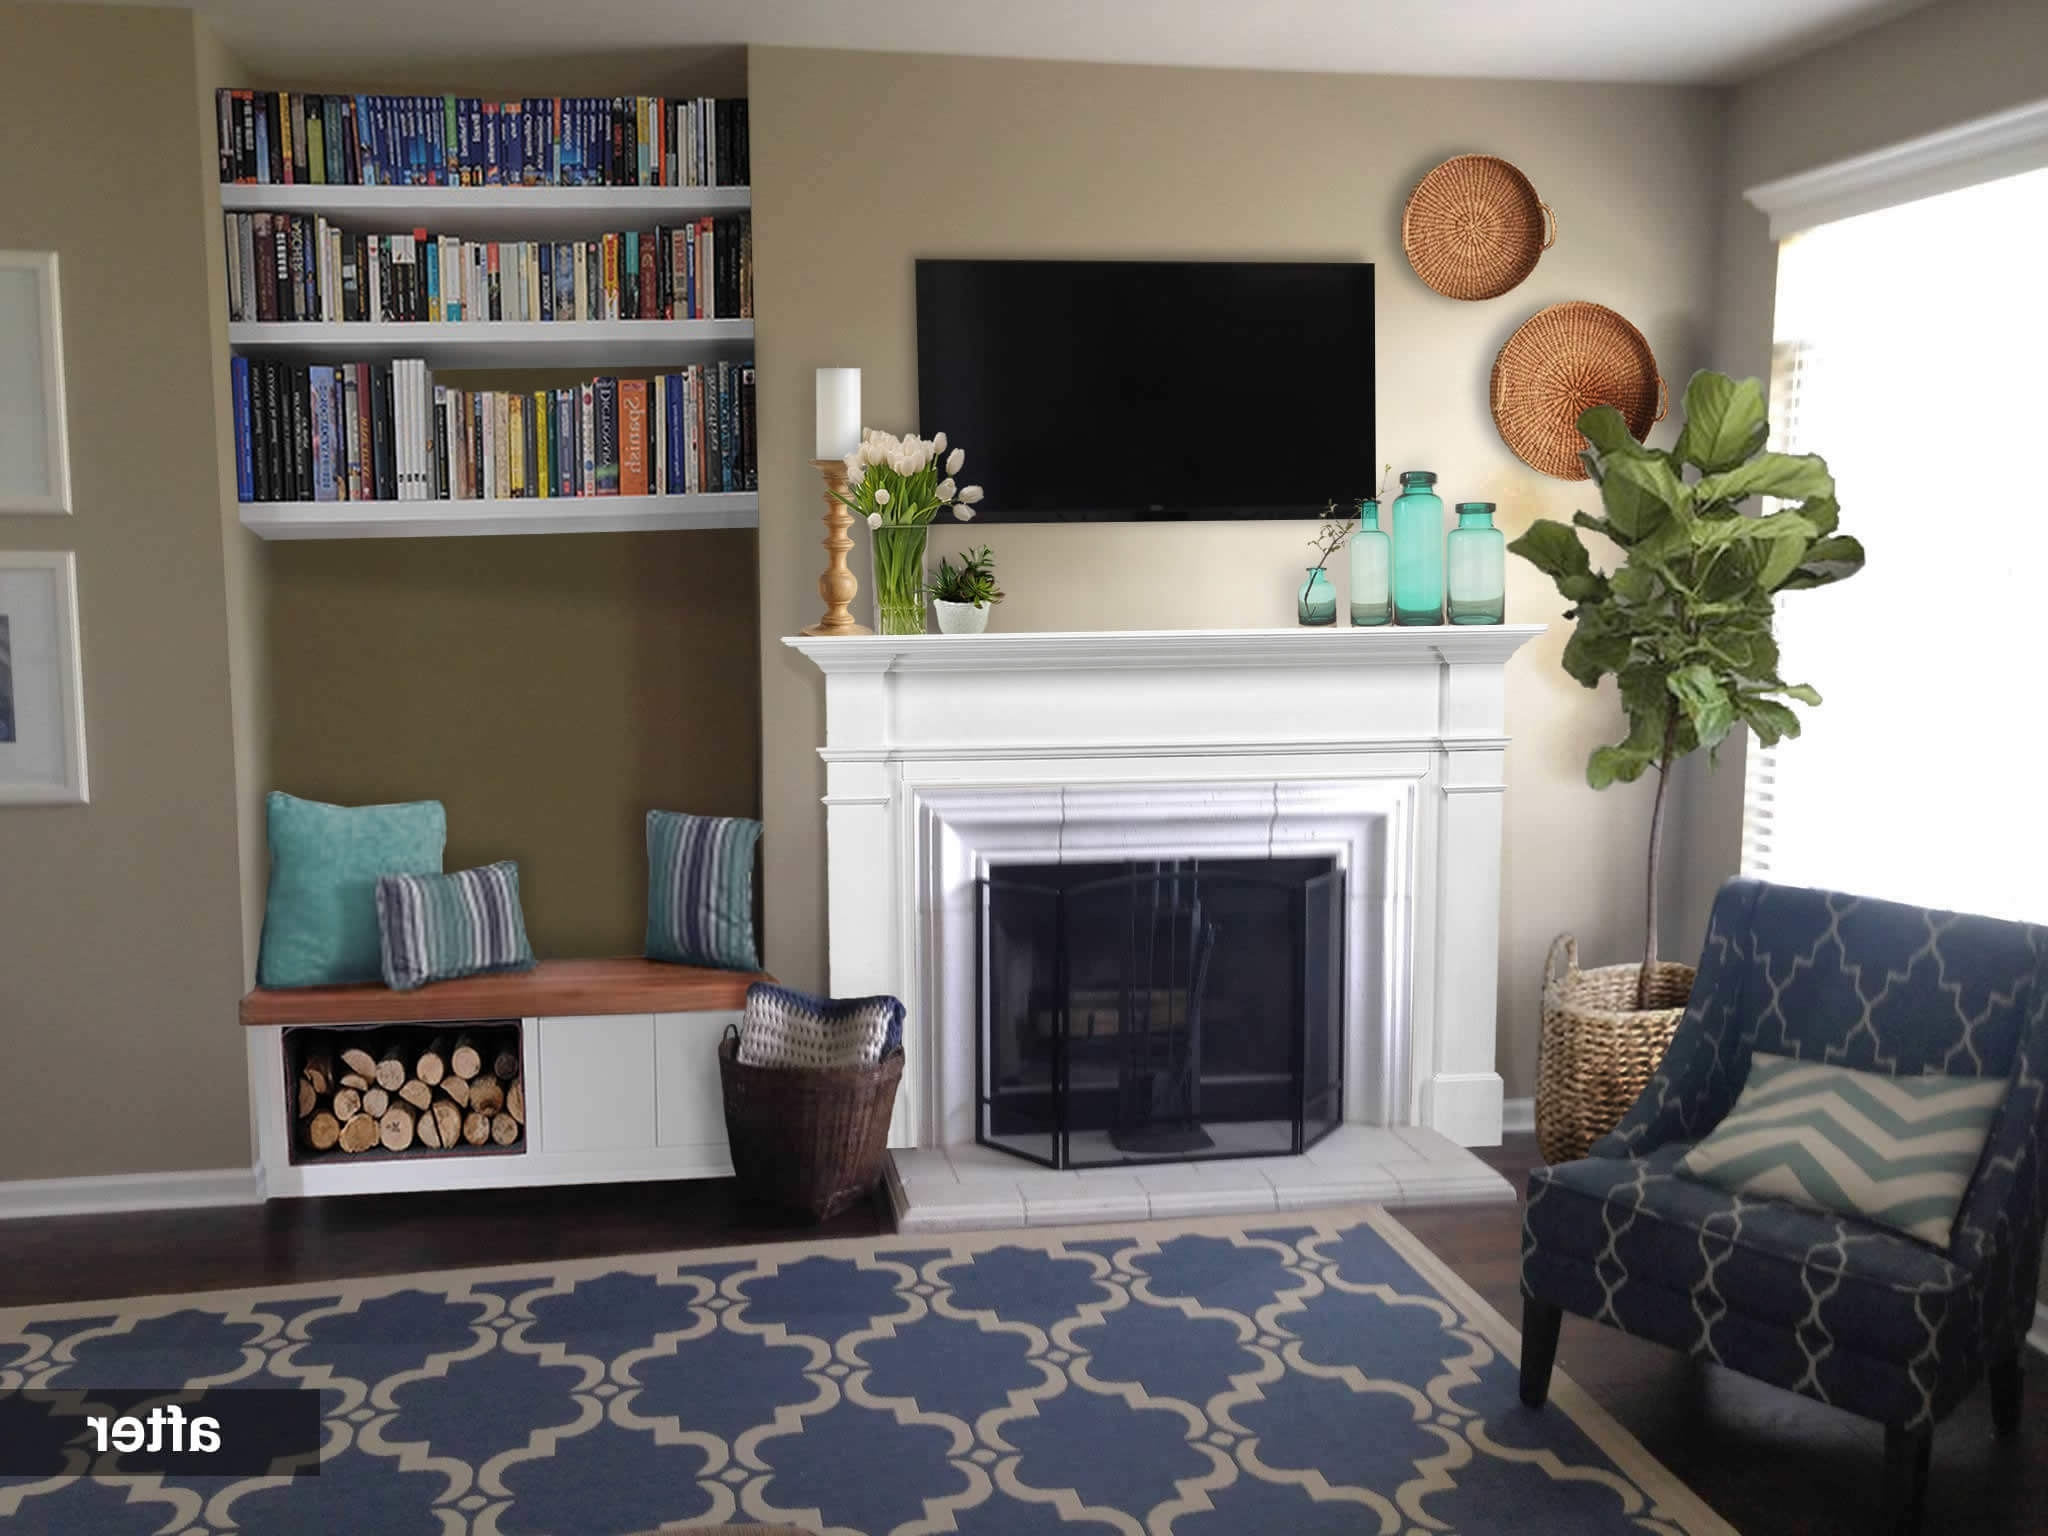 Remodelaholic | Real Life Rooms: An Awkward Alcove Becomes A Alcove Storage Living Room